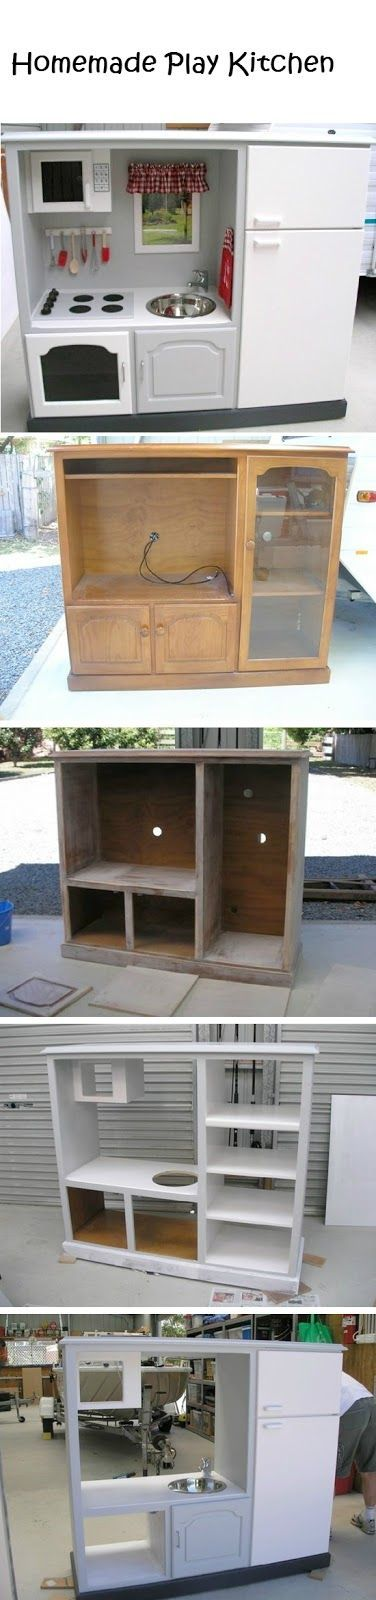 Homemade Play Kitchen- I see these entertainment centers all the time at the thrift store for cheap.  Great idea!